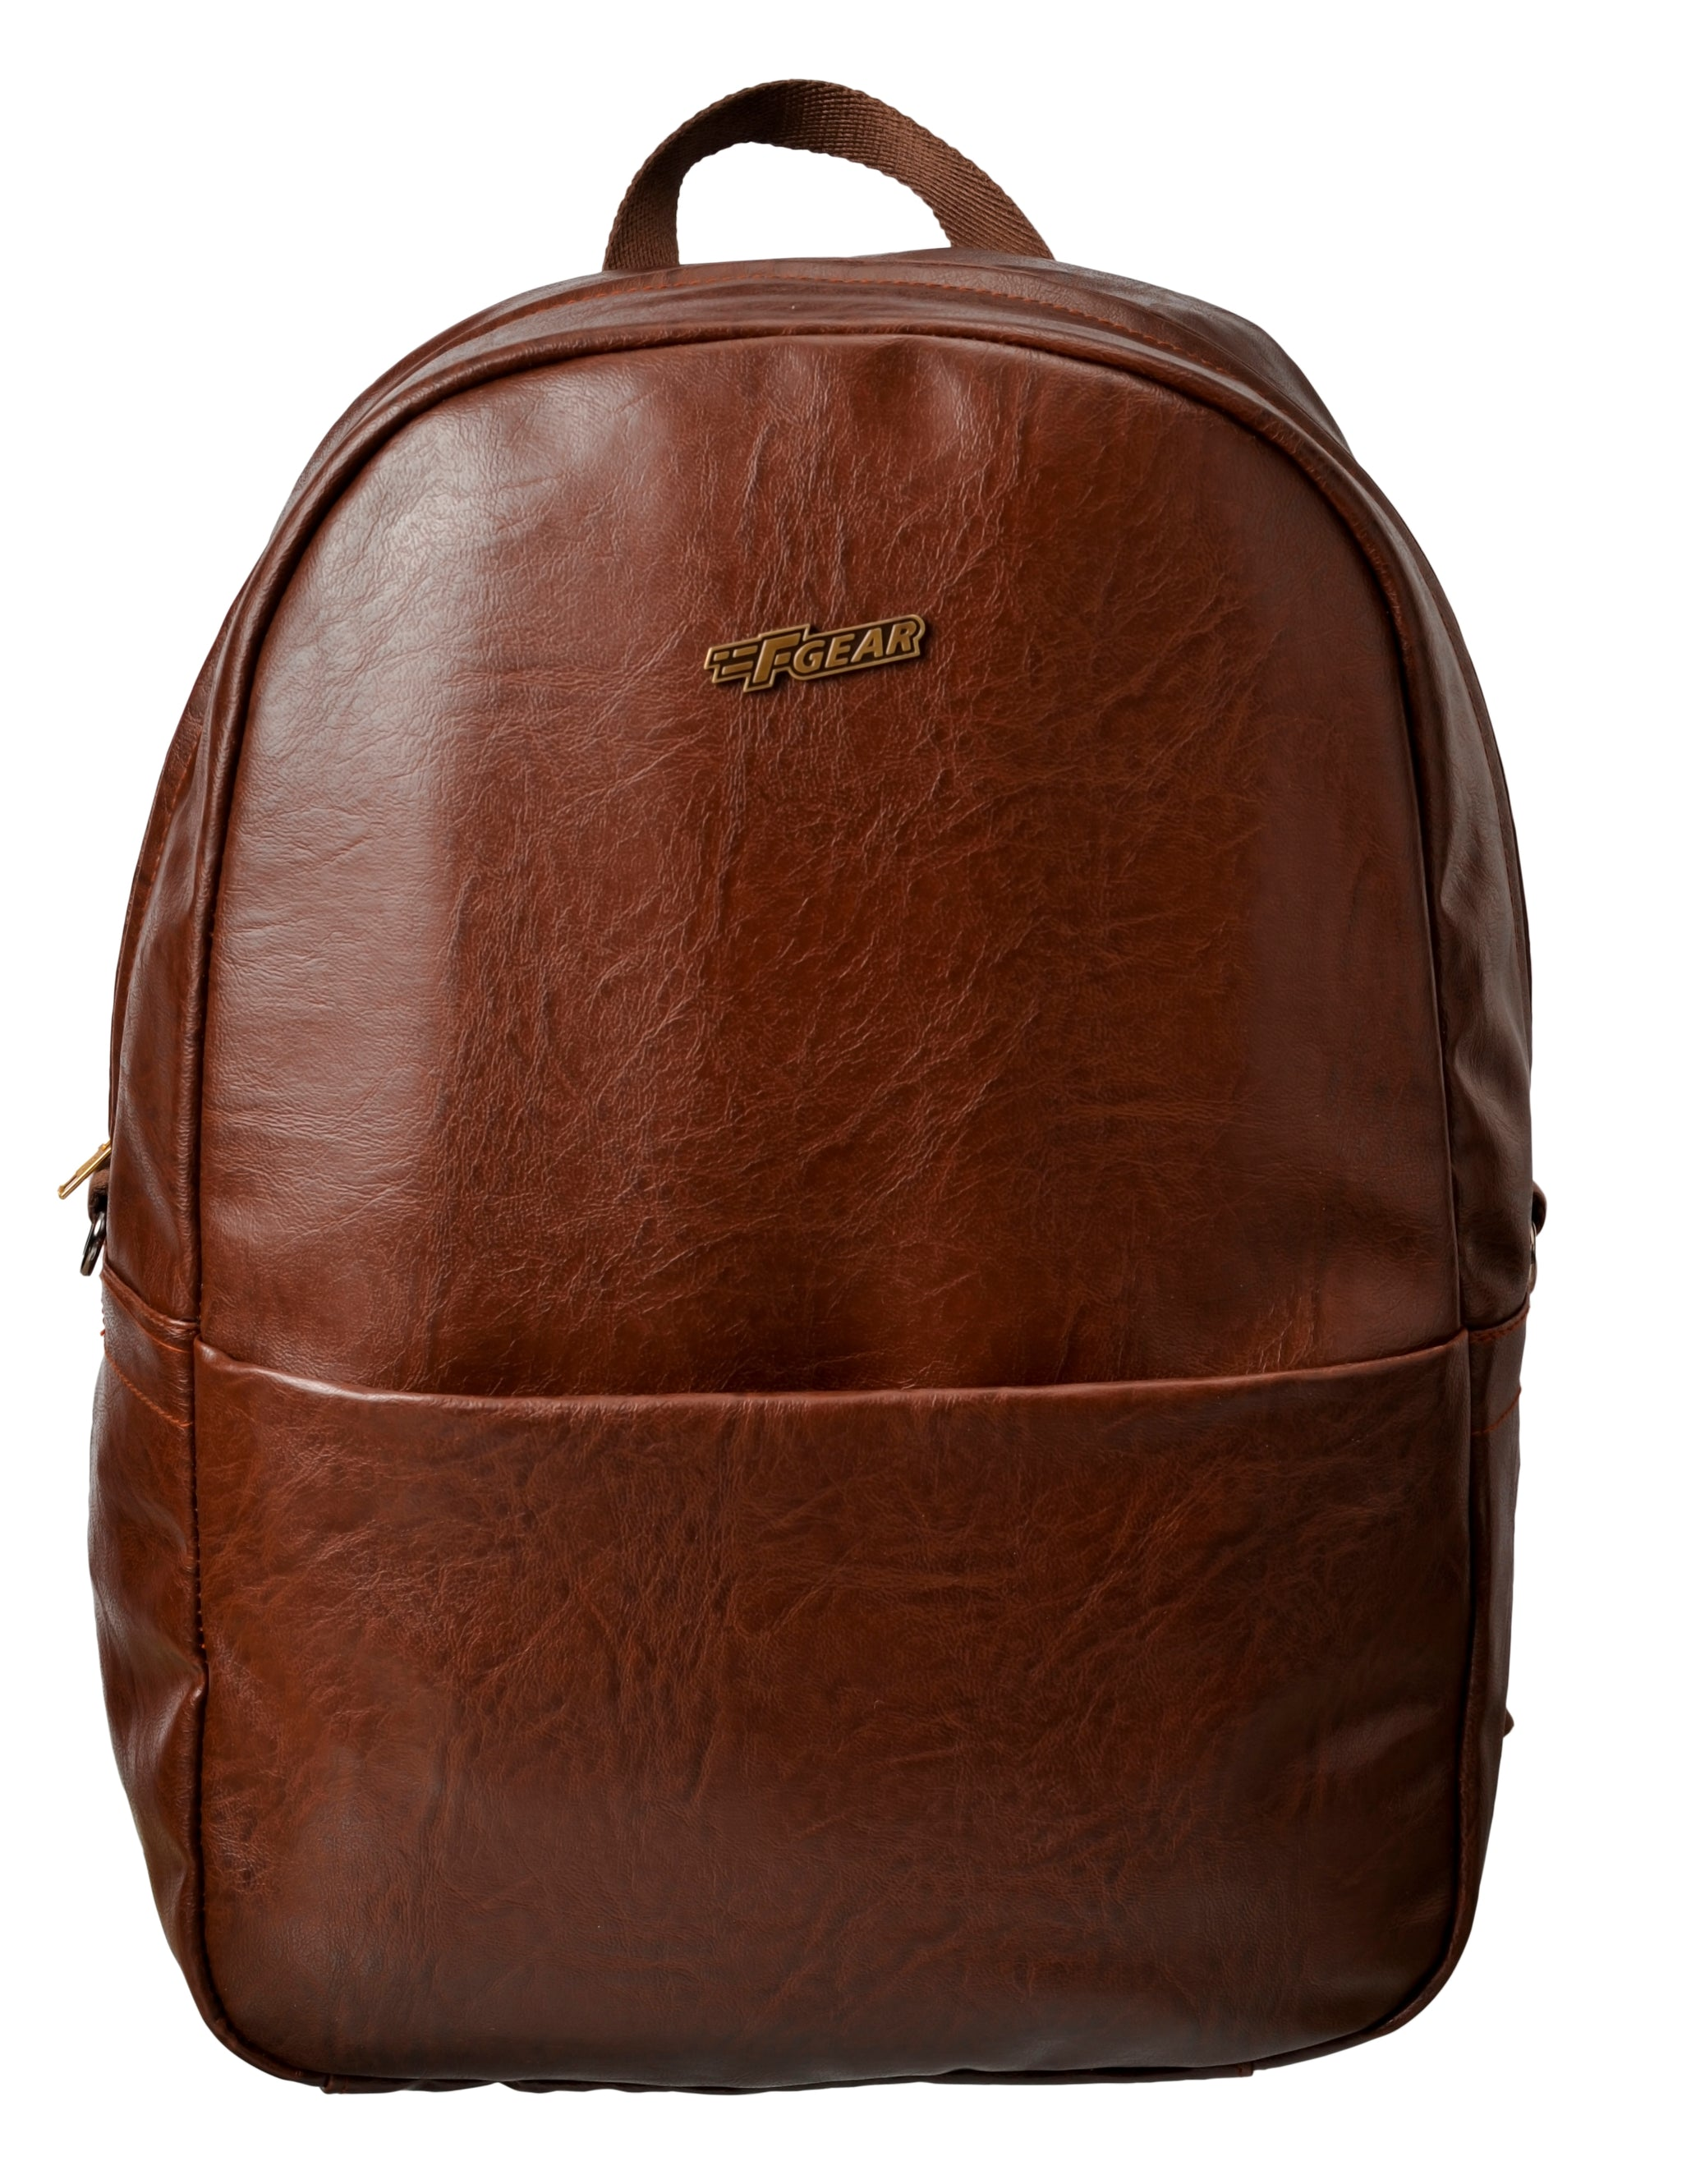 F Gear Electra Luxur 23 Ltrs Laptop Backpack (Brown)